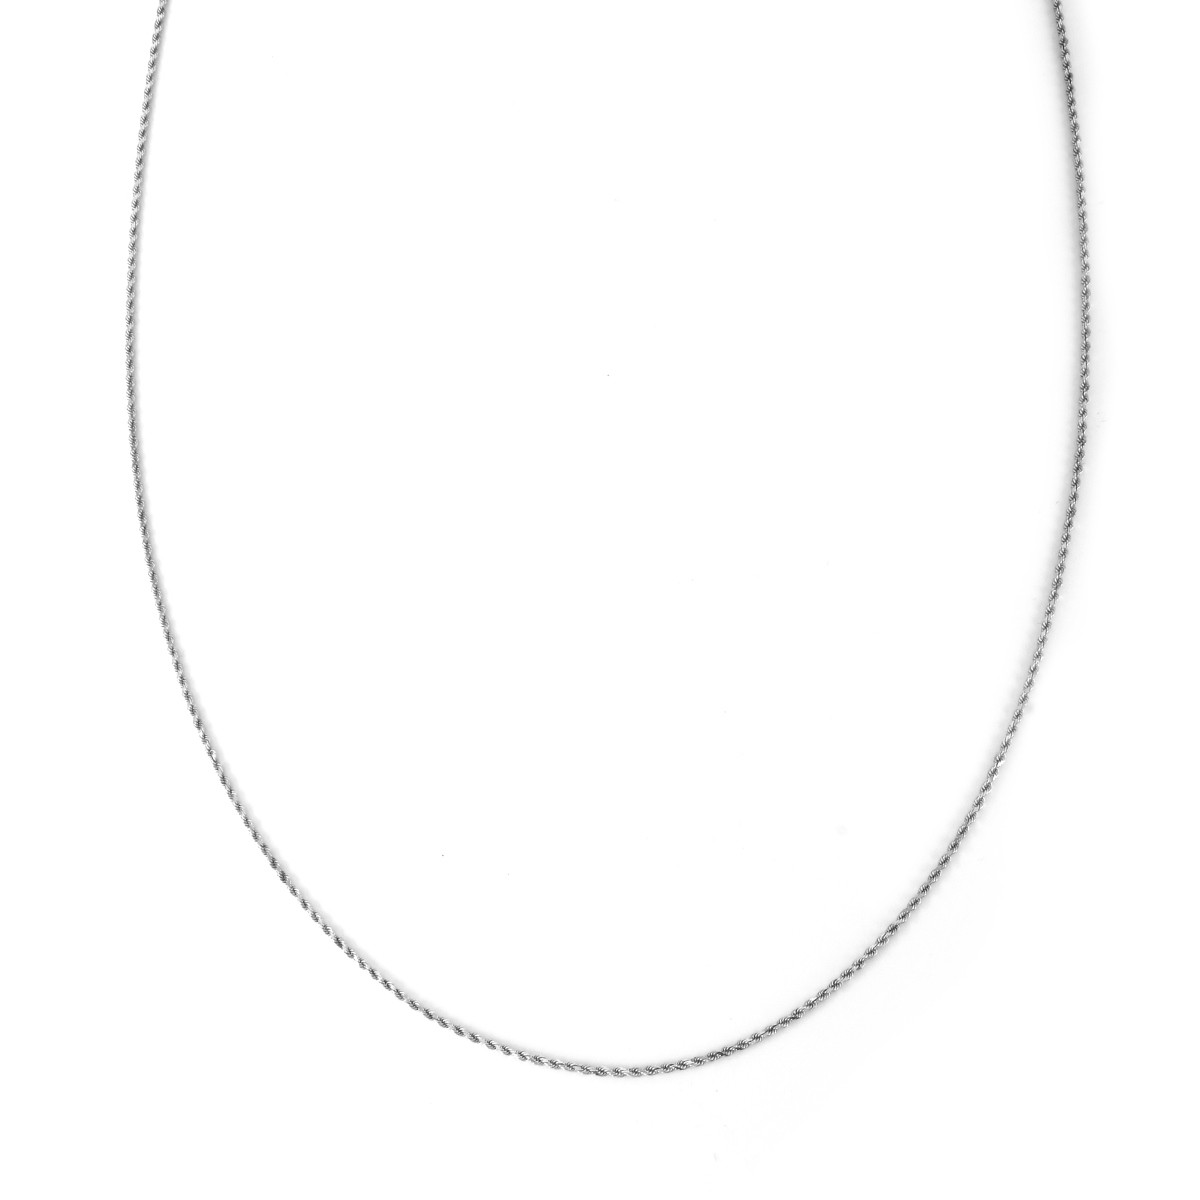 14K Chain / Necklace